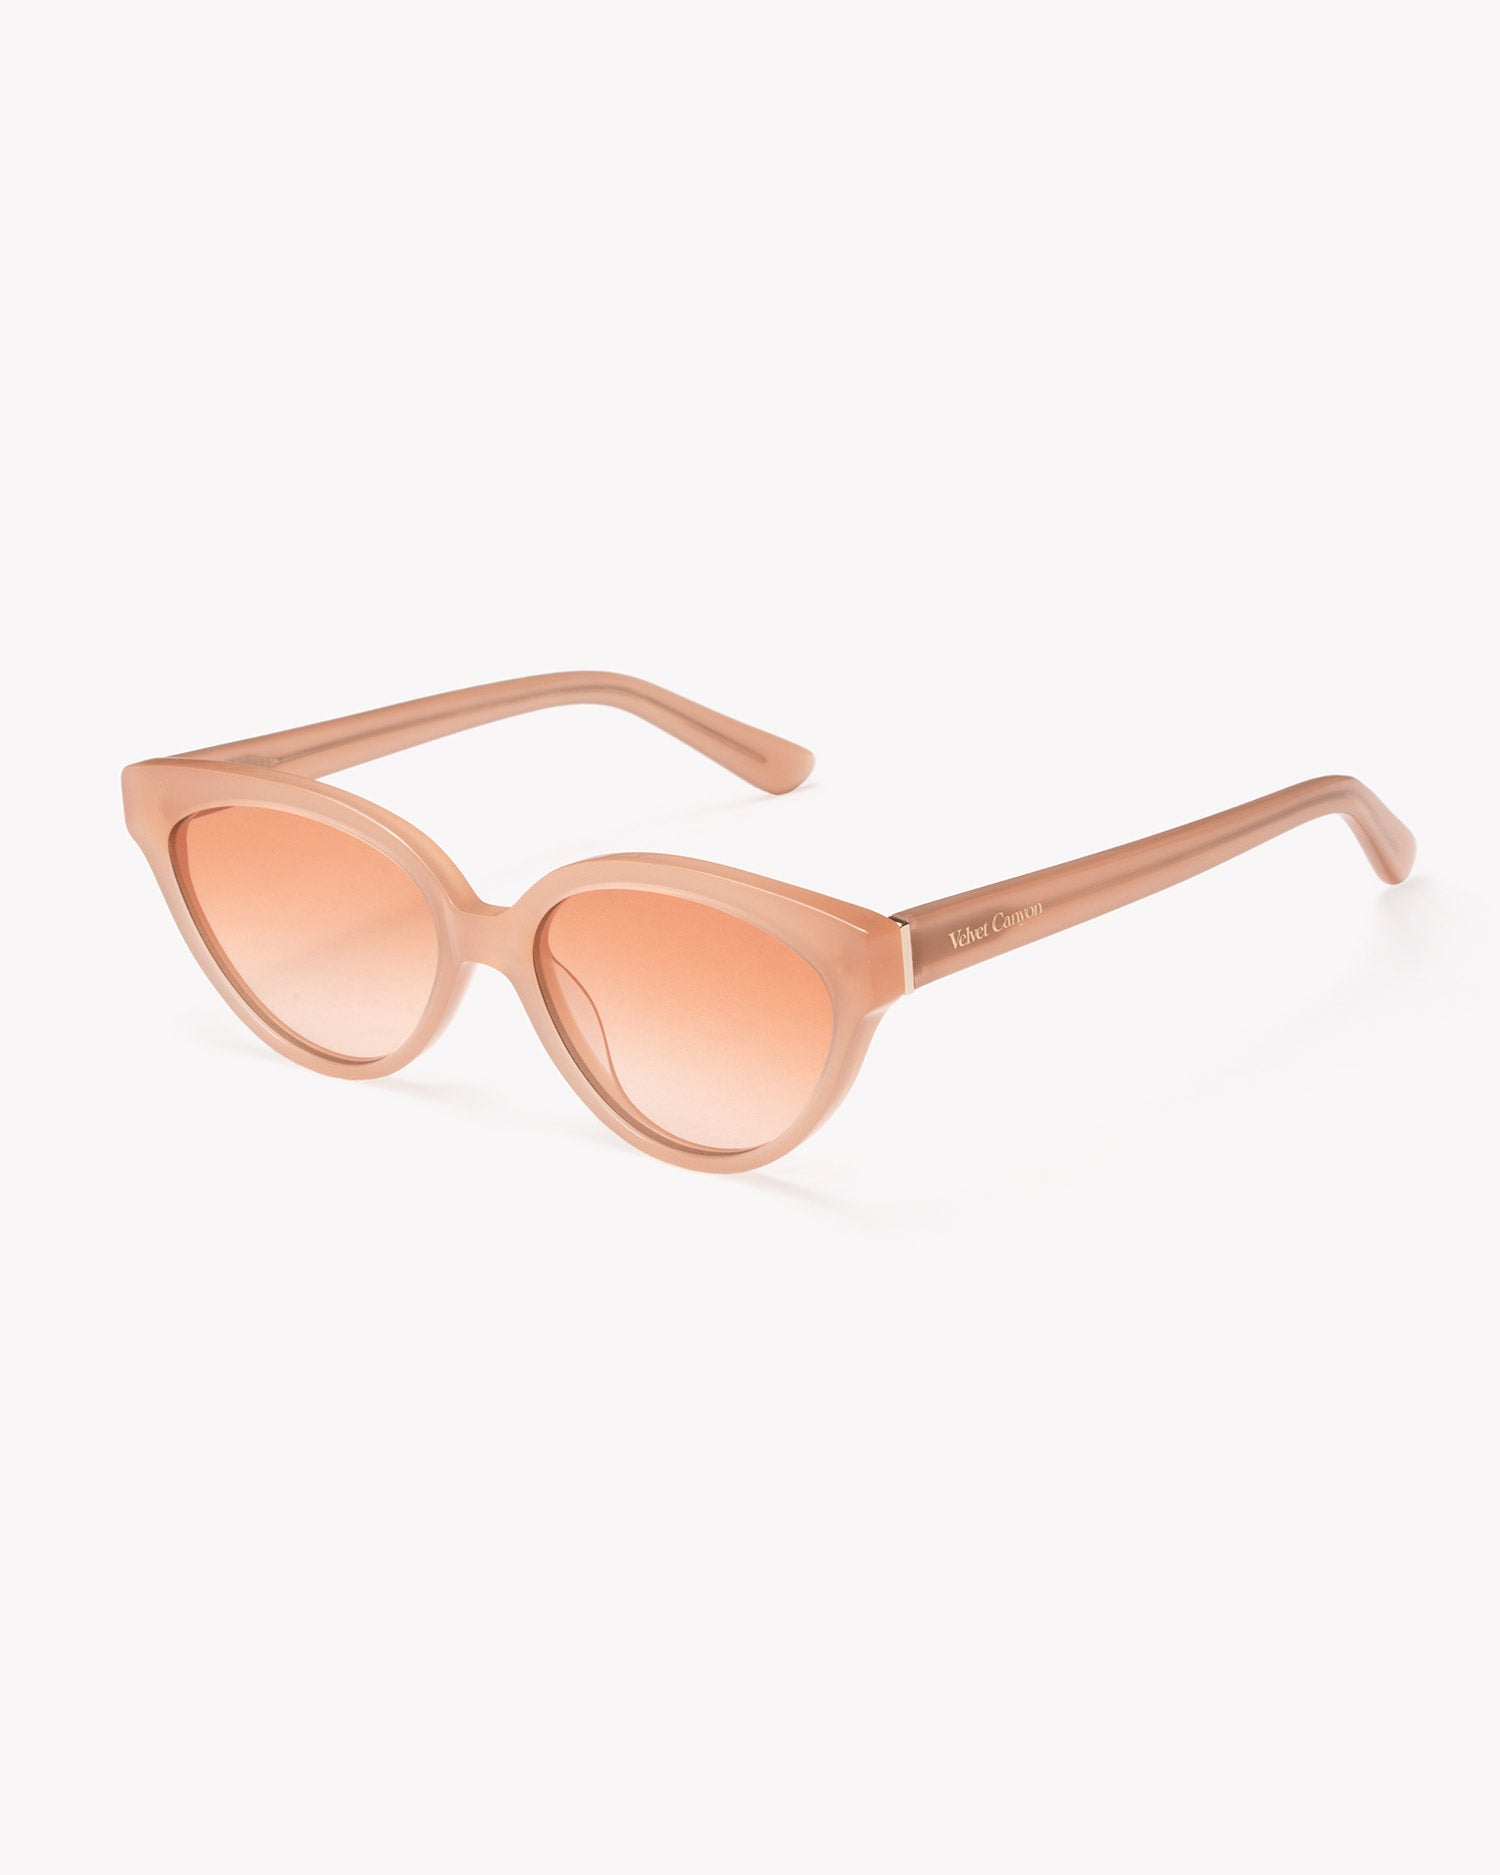 Velvet Canyon cat eye sunglasses, Beat Generation Peach